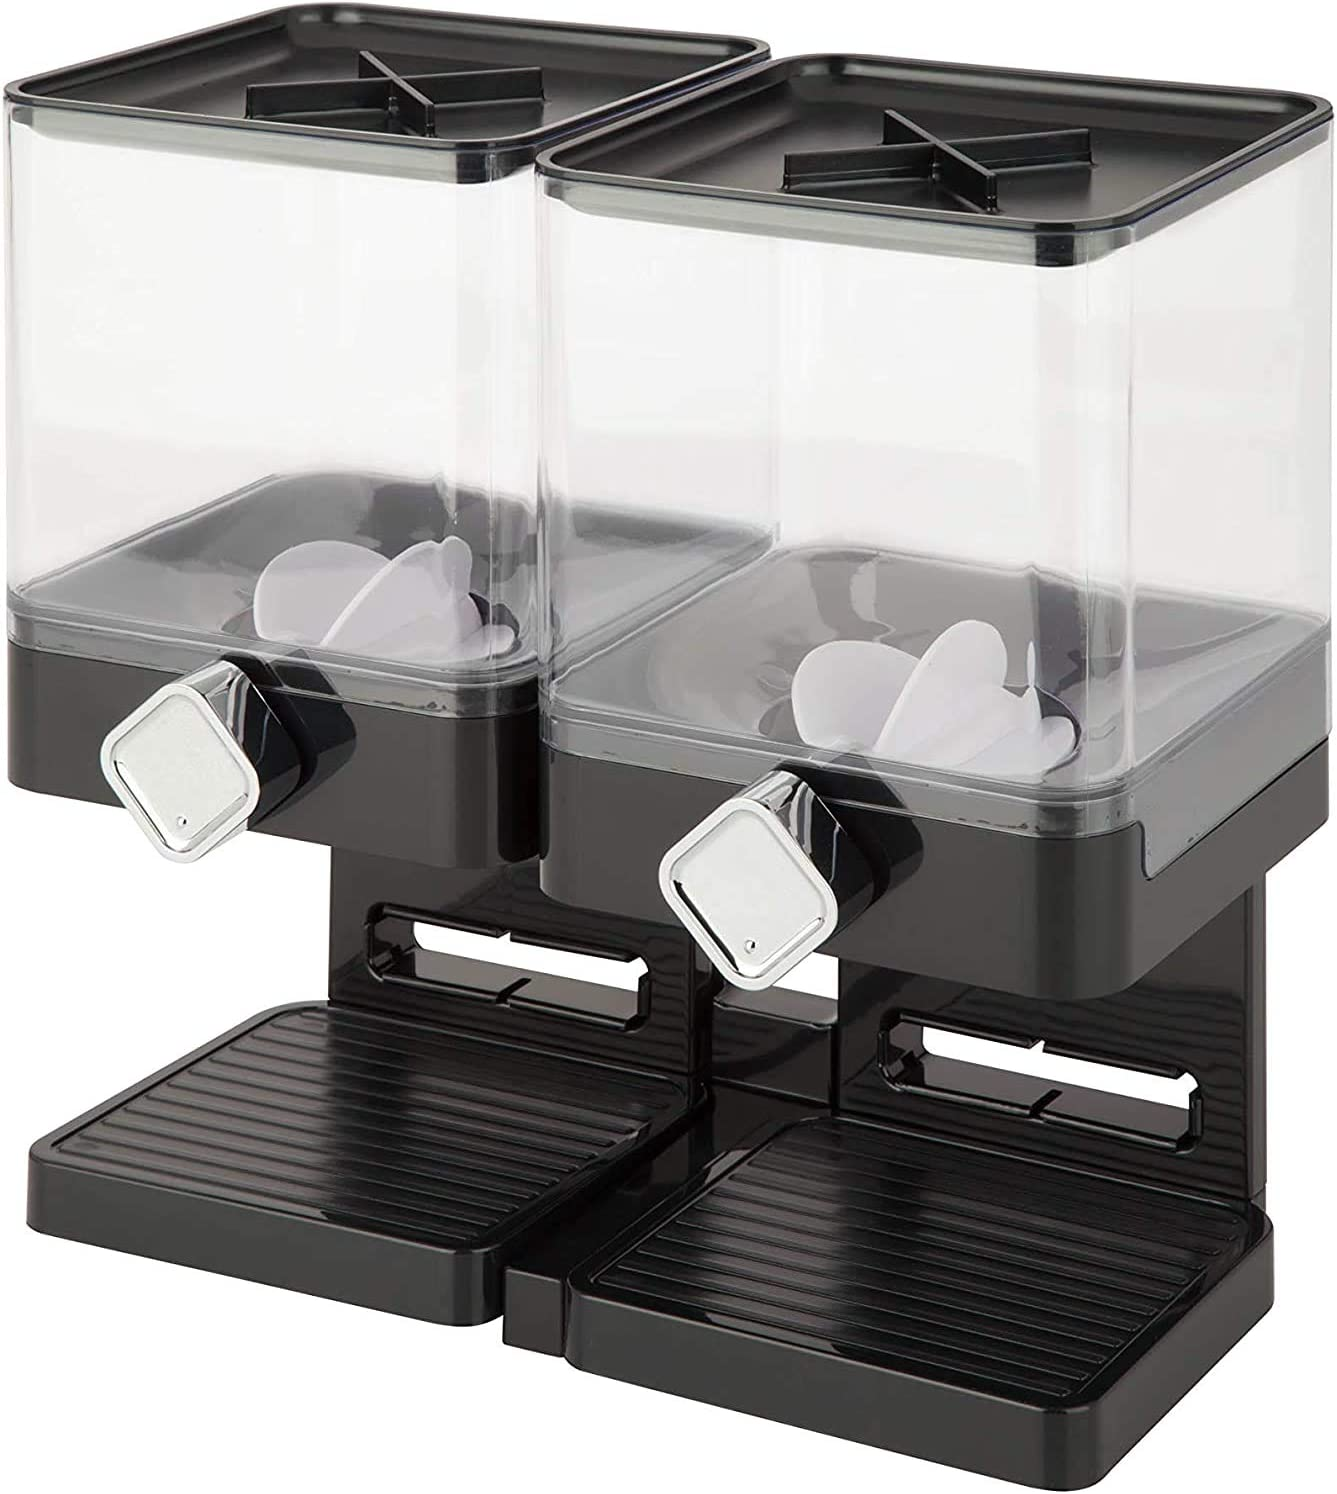 Dual Dispenser Dry Food Dispenser Cereal Dispenser Double Food Storage Container Square Chamber Dual Control Household Kitchen Storage Bottles (Black-Dual)